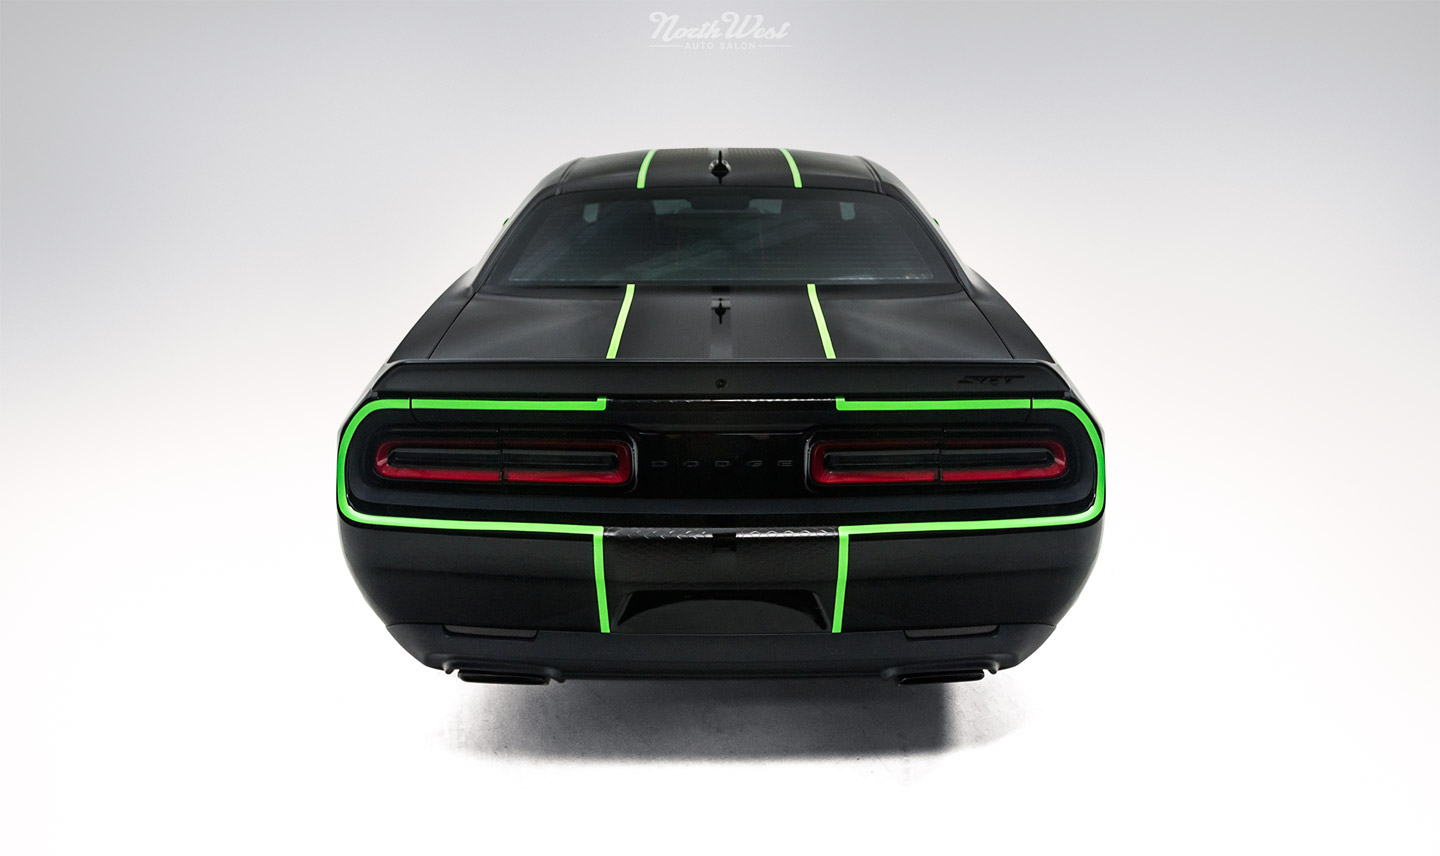 Dodge-Challenger-SRT-Hellcat-new-car-detail-ceramic-pro-custom-neon-green-stripes-back.jpg